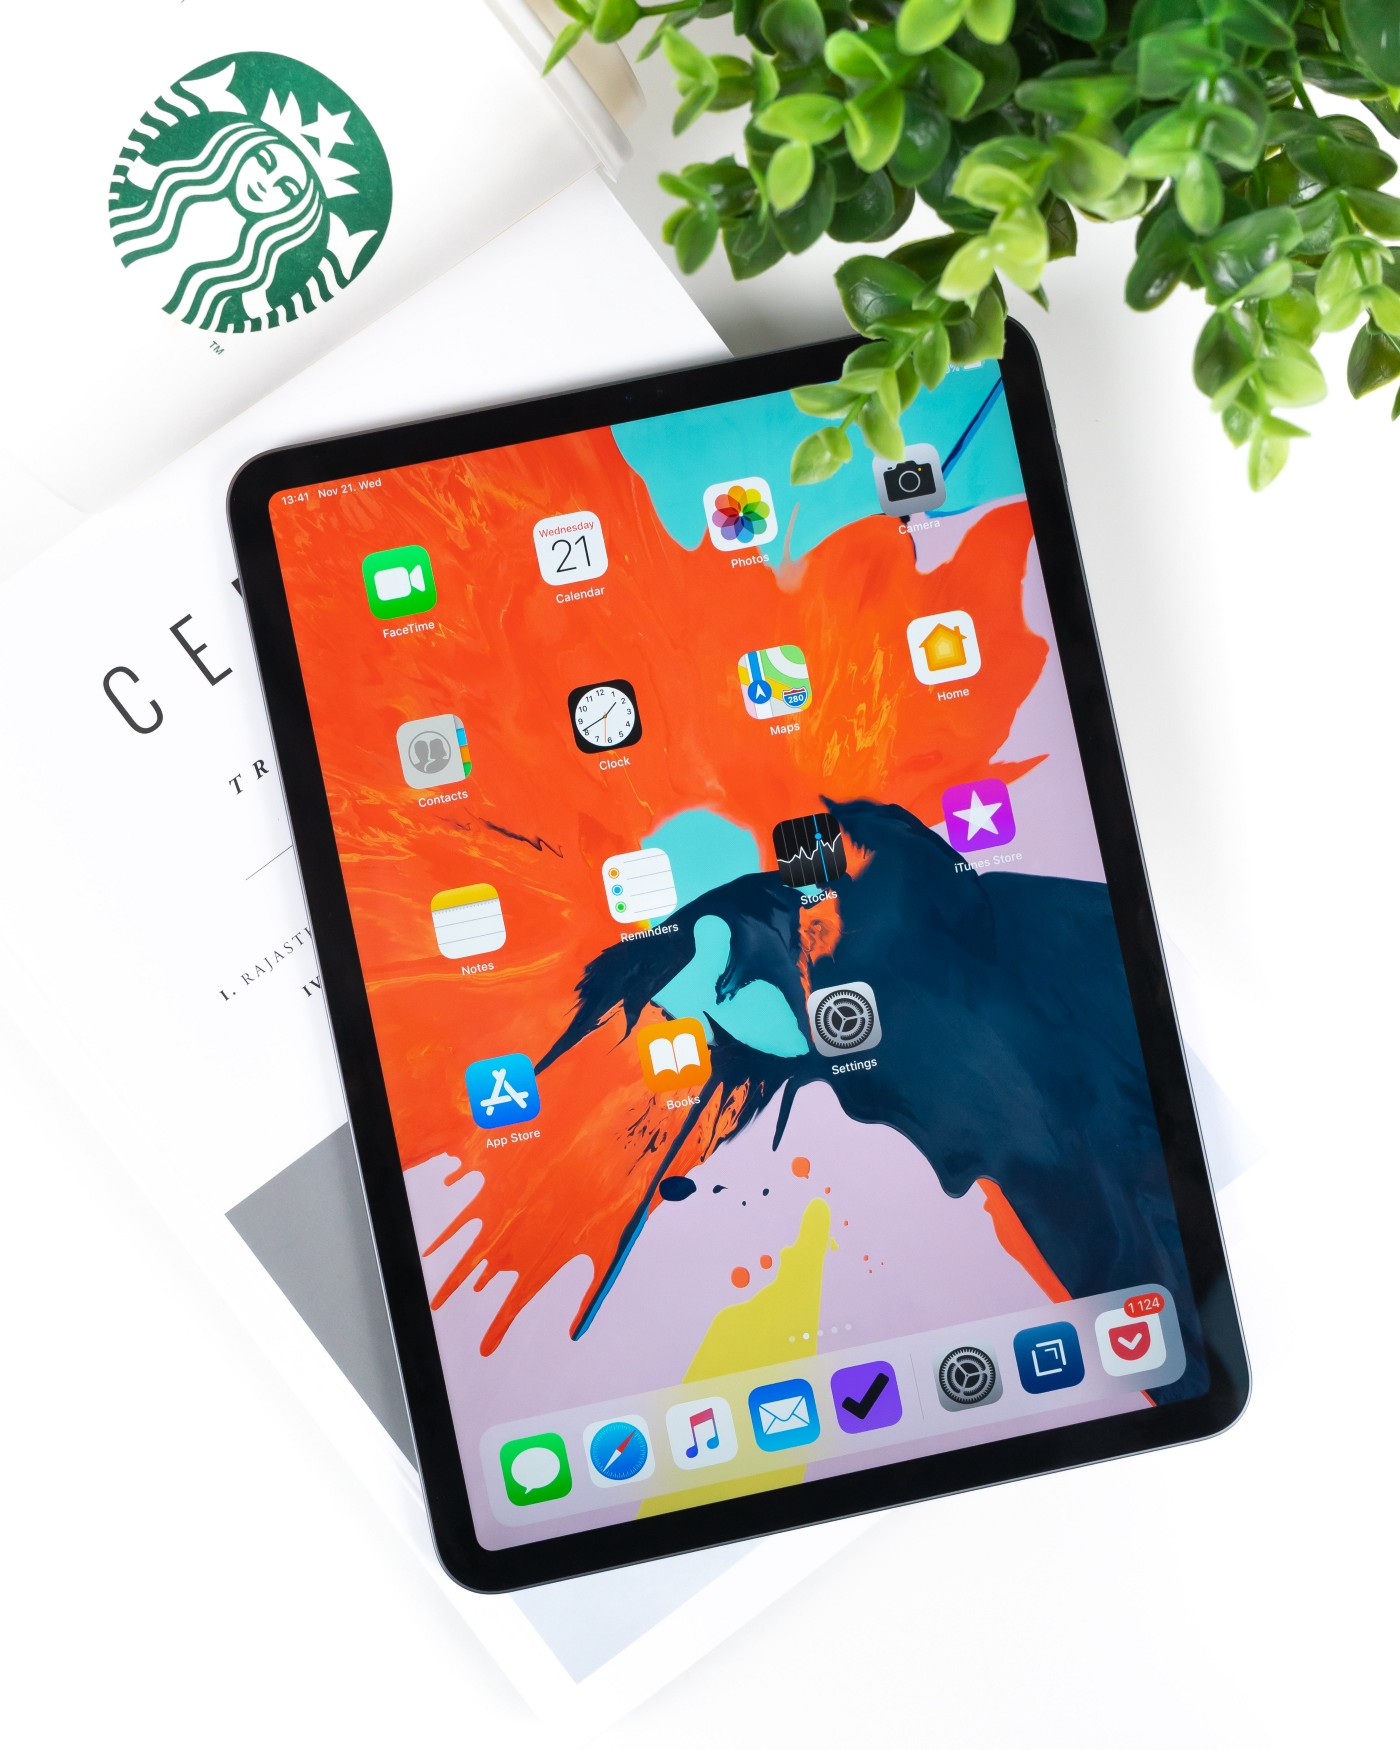 The new iPad Pro sitting on top of a book next to a cup of Starbucks in the top left corner and a decorative green plant in the top right corner.